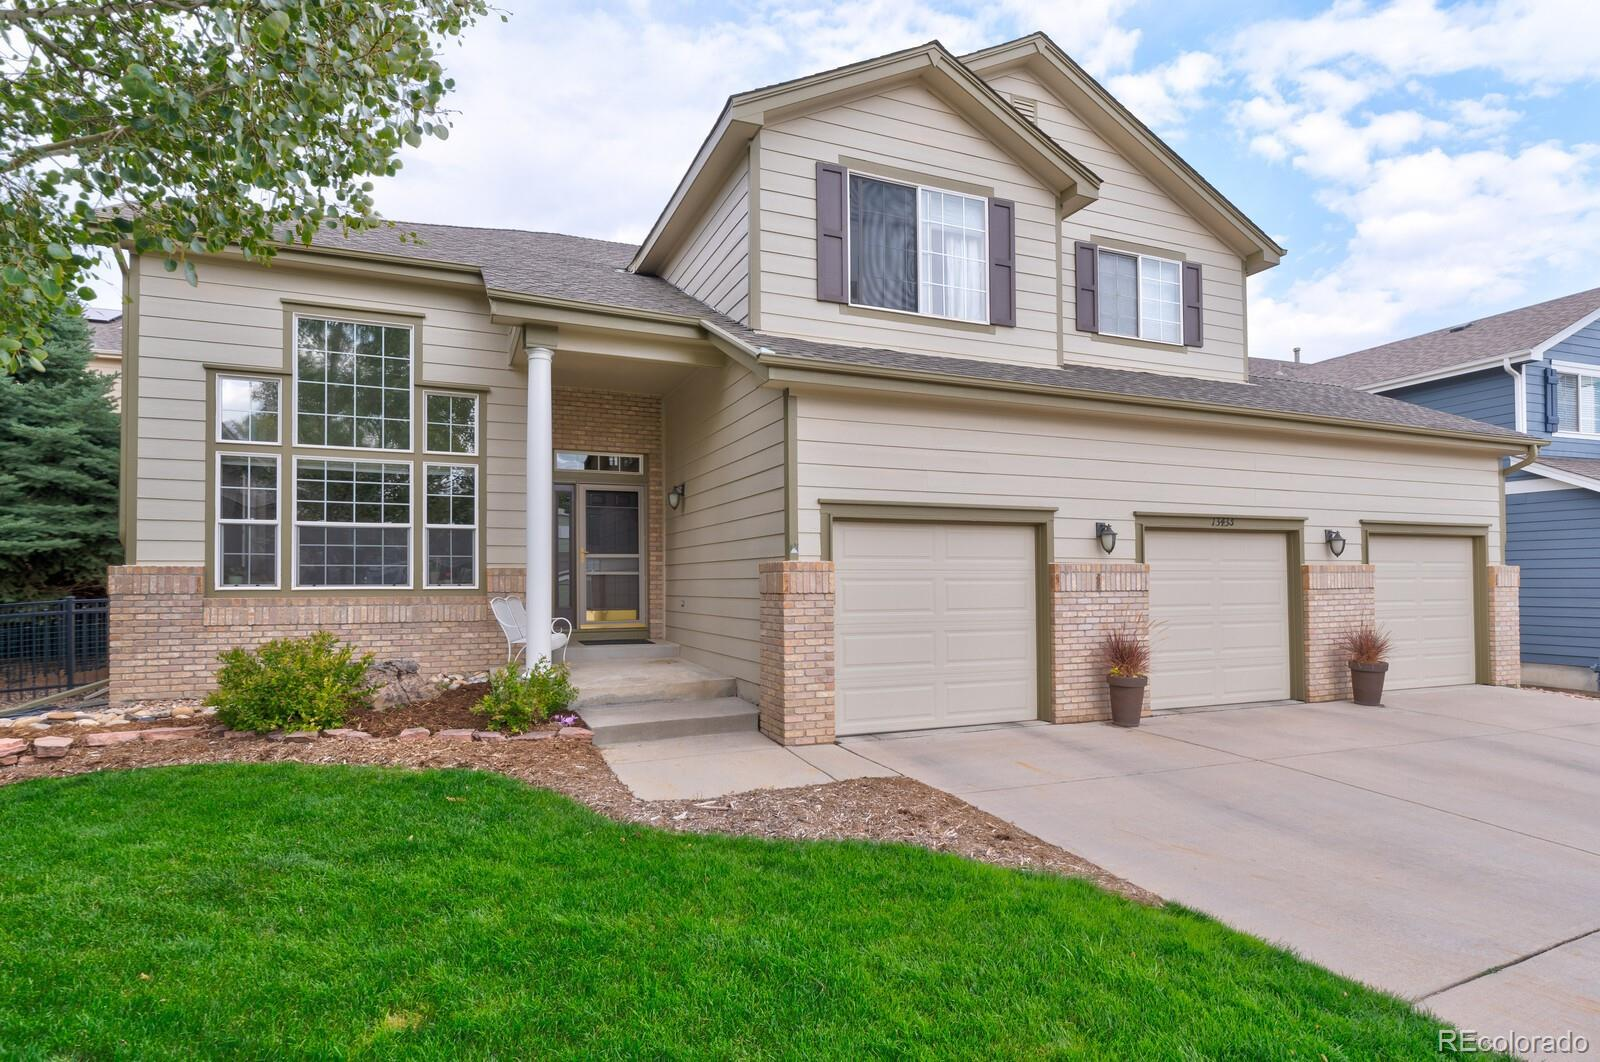 13435 W 62nd Drive, Arvada, CO 80004 - #: 6776552